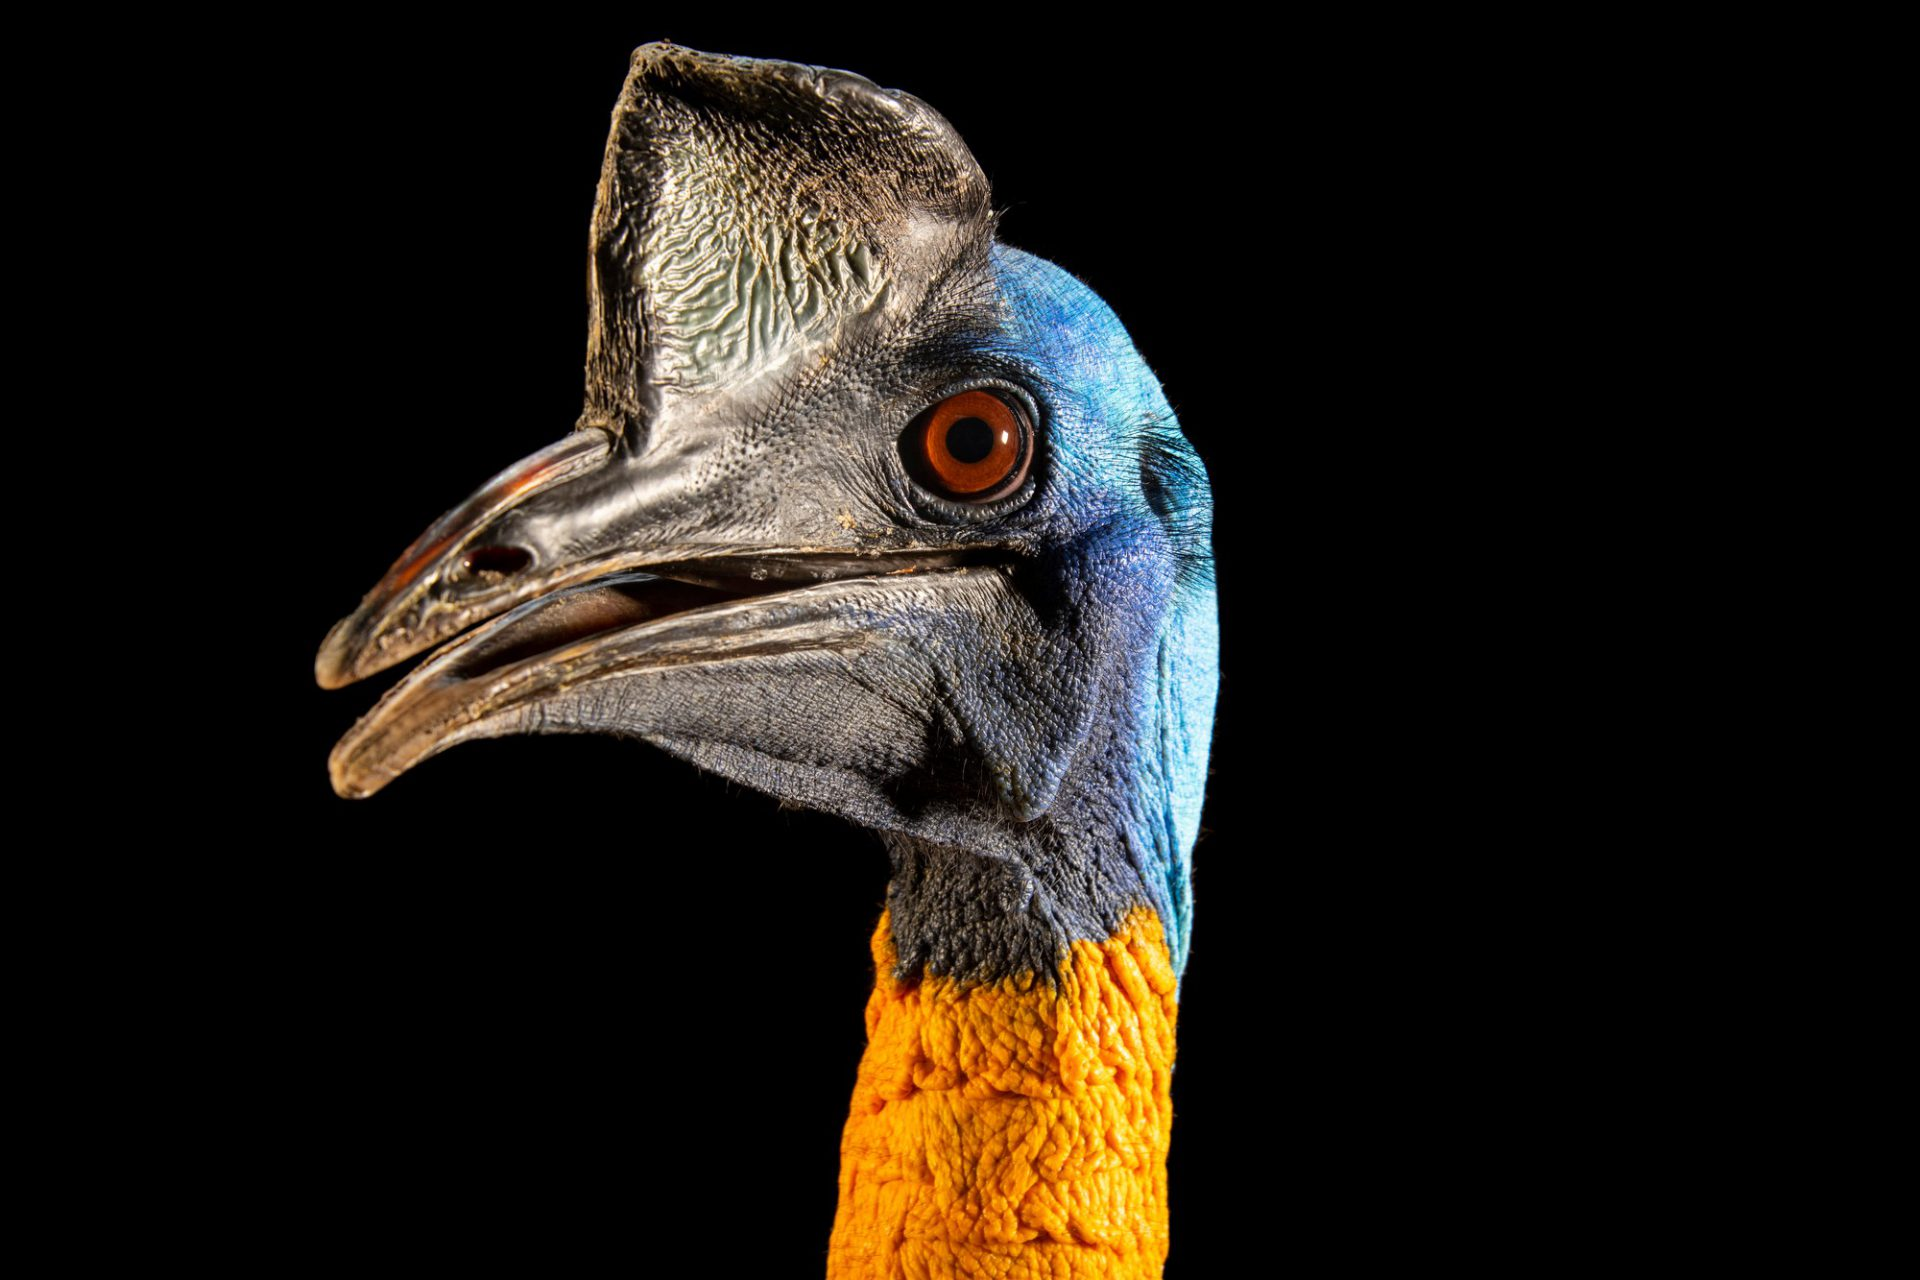 Photo: Single wattled cassowary (Casuarius unappendiculatus unappendiculatus) at the Avilon Zoo.